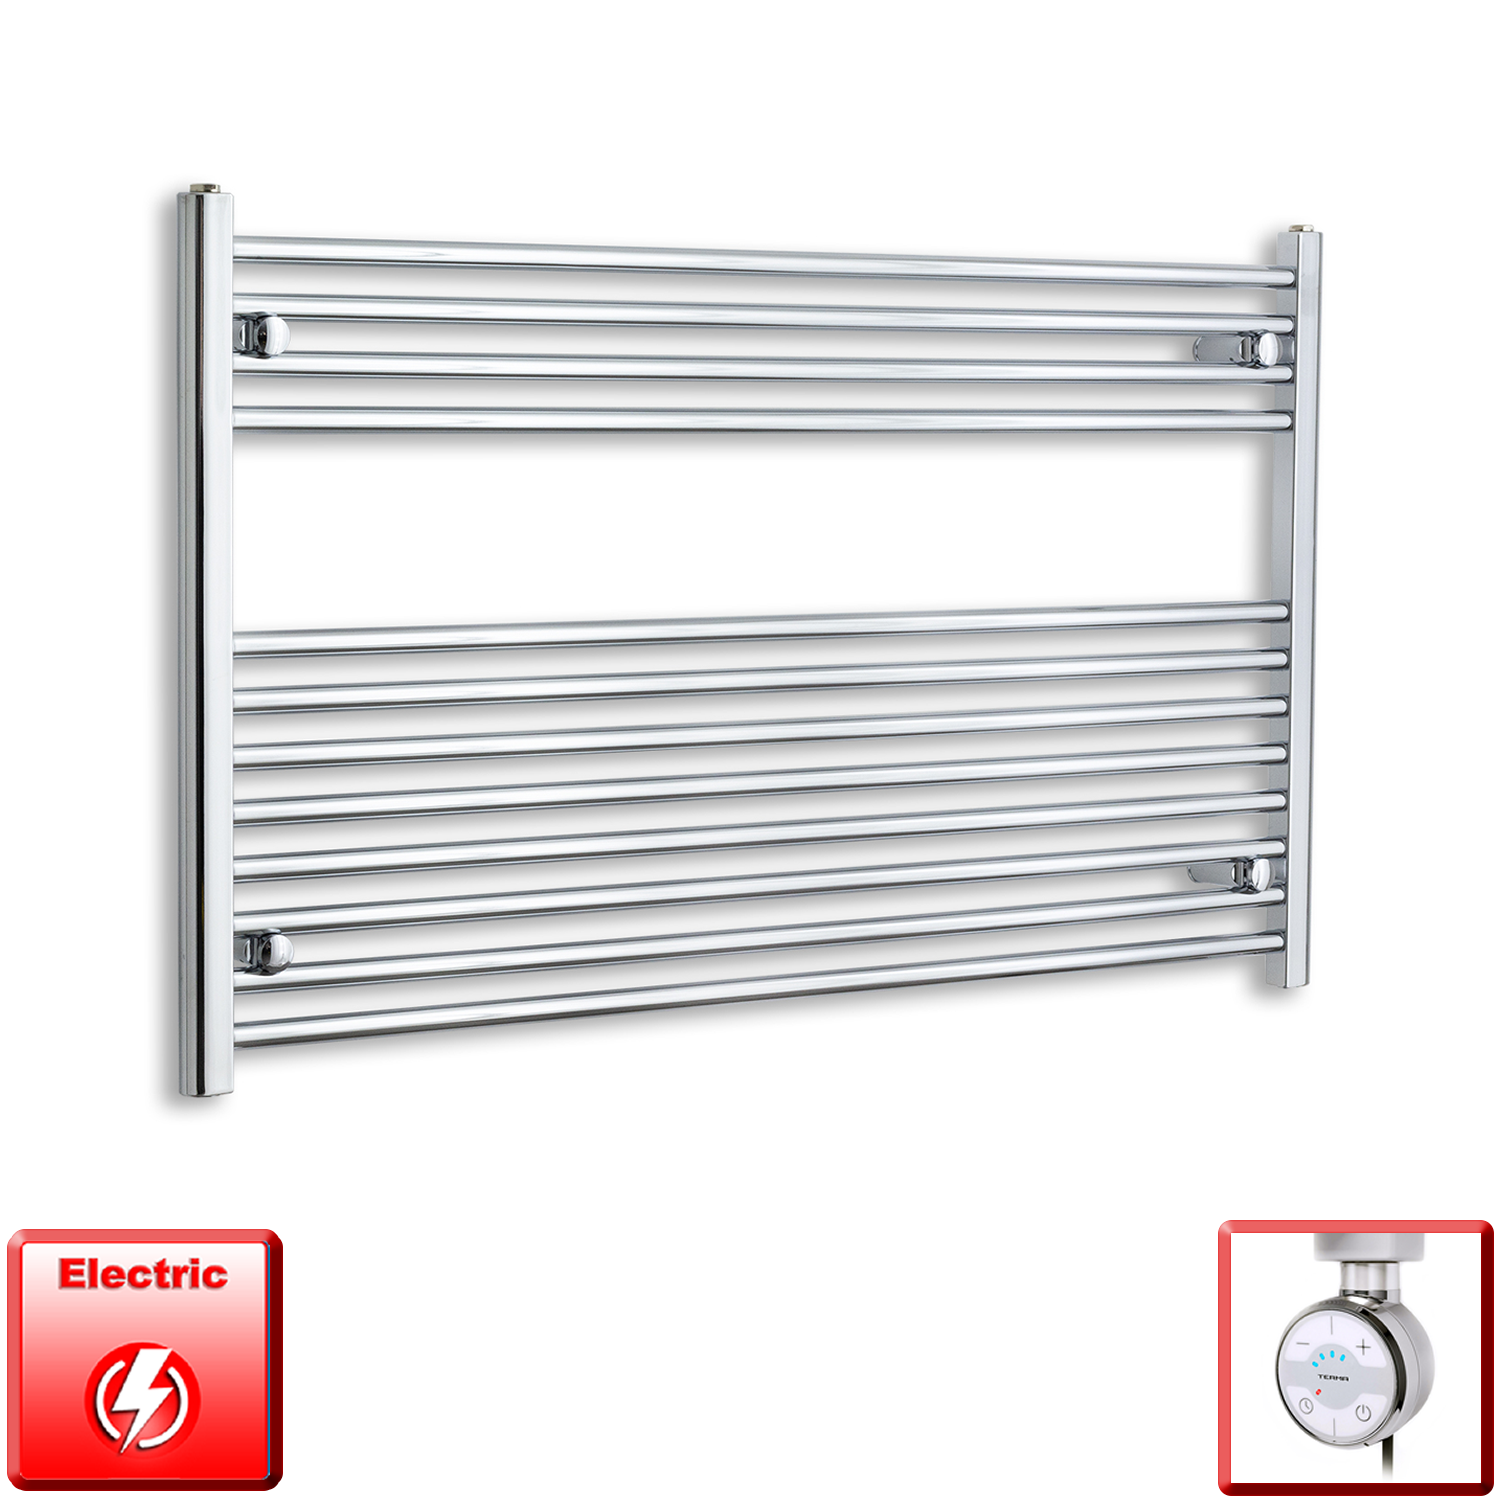 1200mm Wide 700mm High Flat Chrome Pre-Filled Electric Heated Towel Rail Radiator HTR,MOA Thermostatic Element